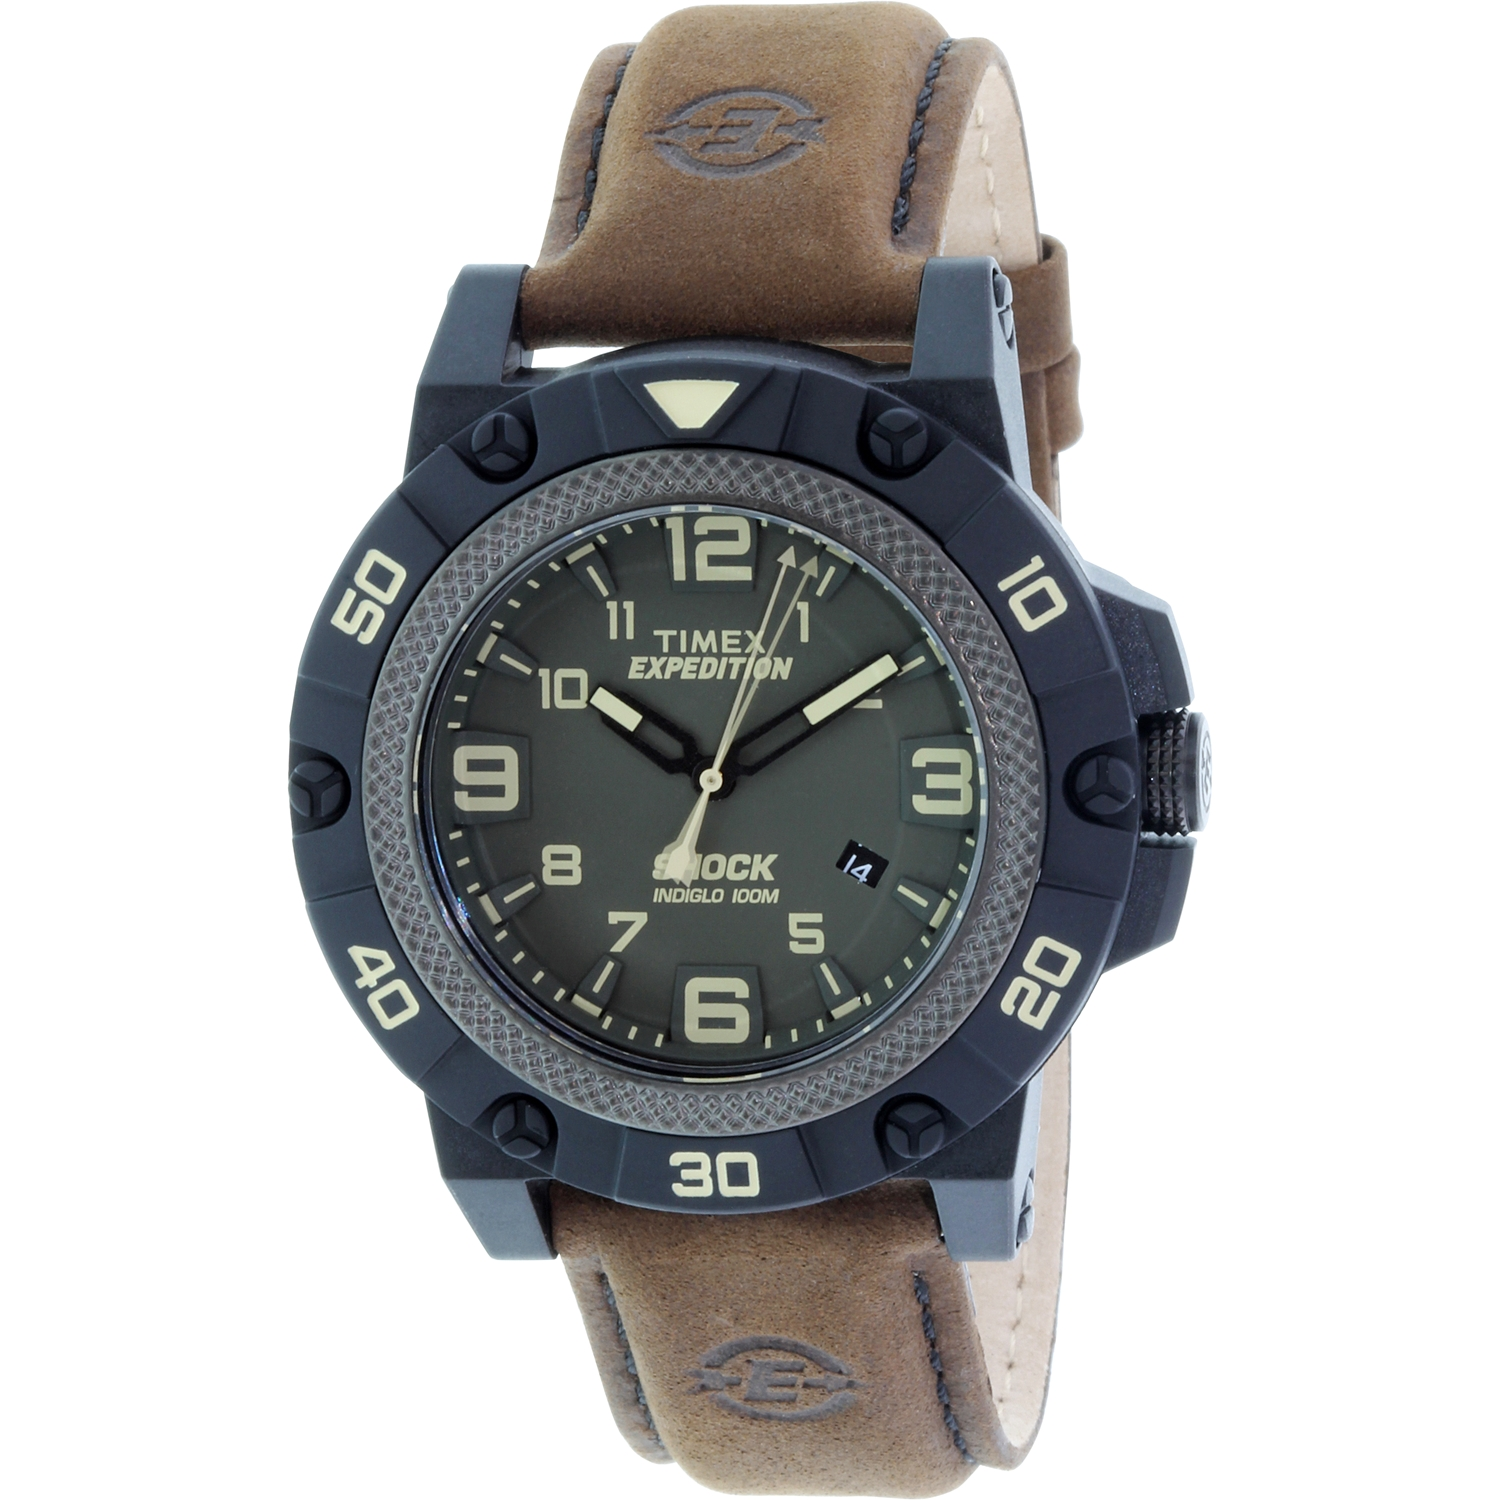 Timex Men's Expedition TW4B01200 Brown Leather Leather Analog Quartz Sport Watch by Timex